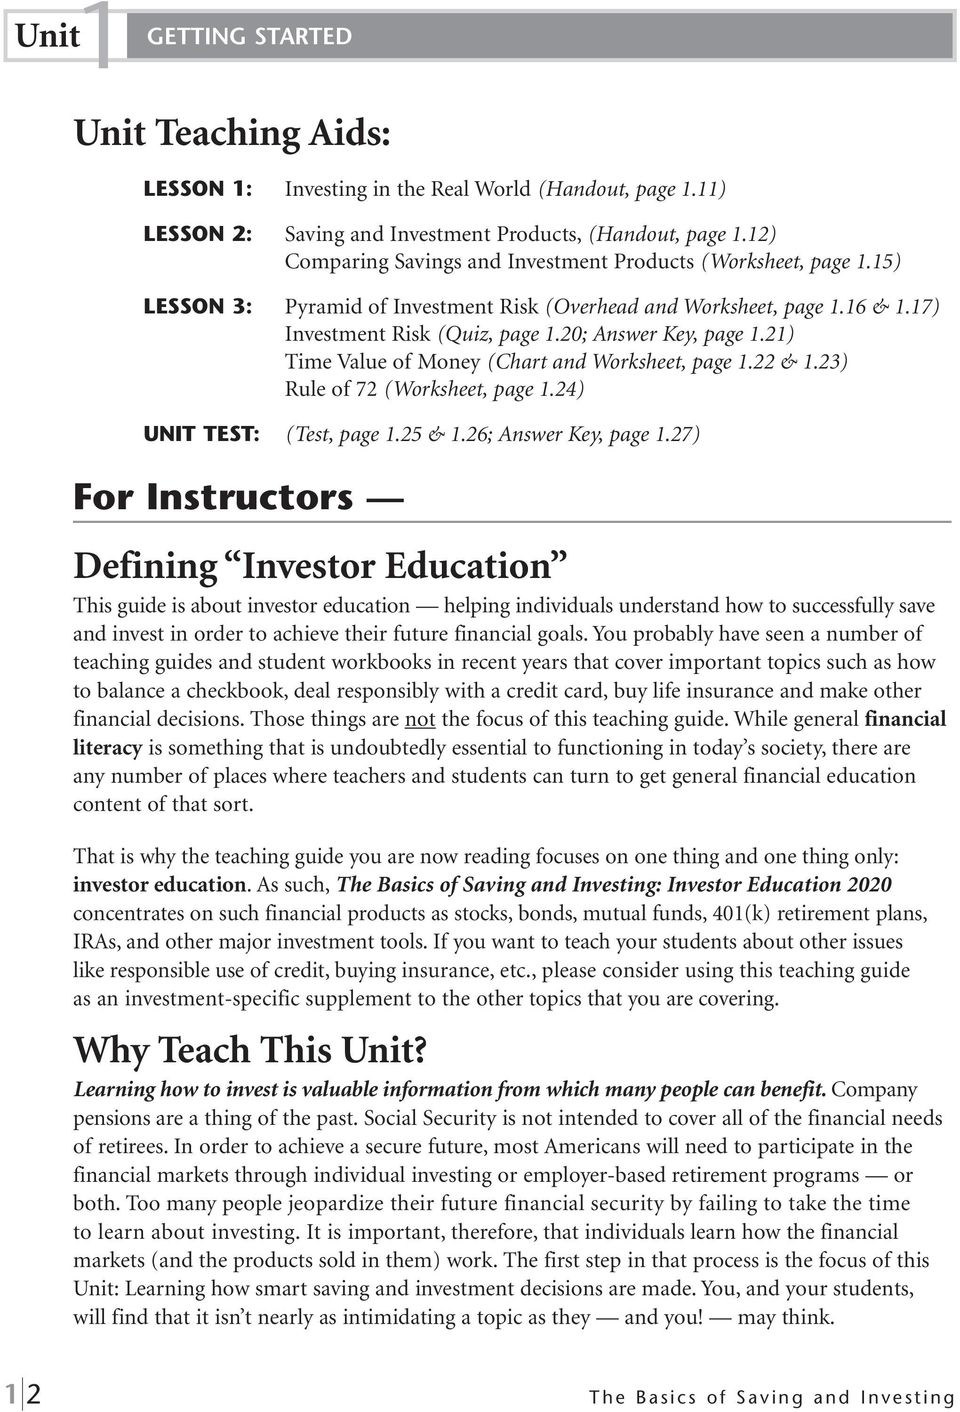 Quiz   Worksheet   Basic Geometry s   Rules   Study as well  in addition 15 Inspirational Rule Of 72 Worksheet Answers Images   Ajihle org furthermore  likewise  further  besides Home additionally New Why Does Oshkosh Jog Around Worksheet Answers Lancerules moreover Quiz   Worksheet   Rule of 72 in Finance   Study in addition WK 6 ACTIVITY Rule Of 72 2 1   l a e fund turn mine type nd N A ME as well  further The BASICS of  The Basics is a product of the   PDF likewise UNIT 1  Getting Started   PDF in addition  furthermore Order of Operations Worksheets   Order of Operations Worksheets for together with . on rule of 72 worksheet answers